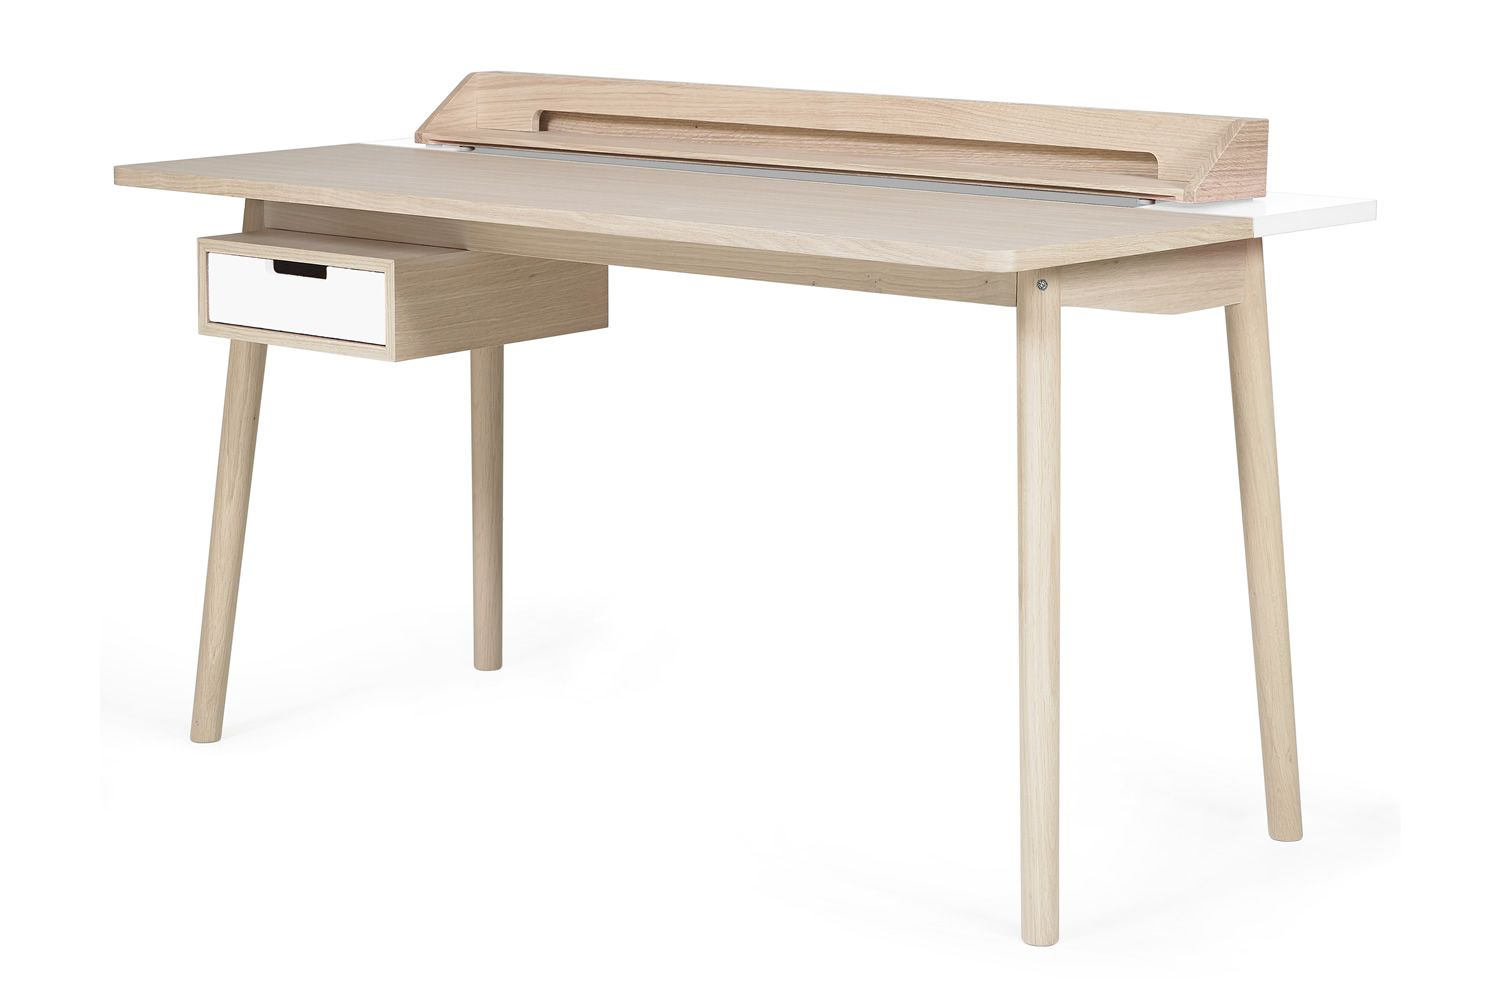 Honoré Design Wooden Desk White Details